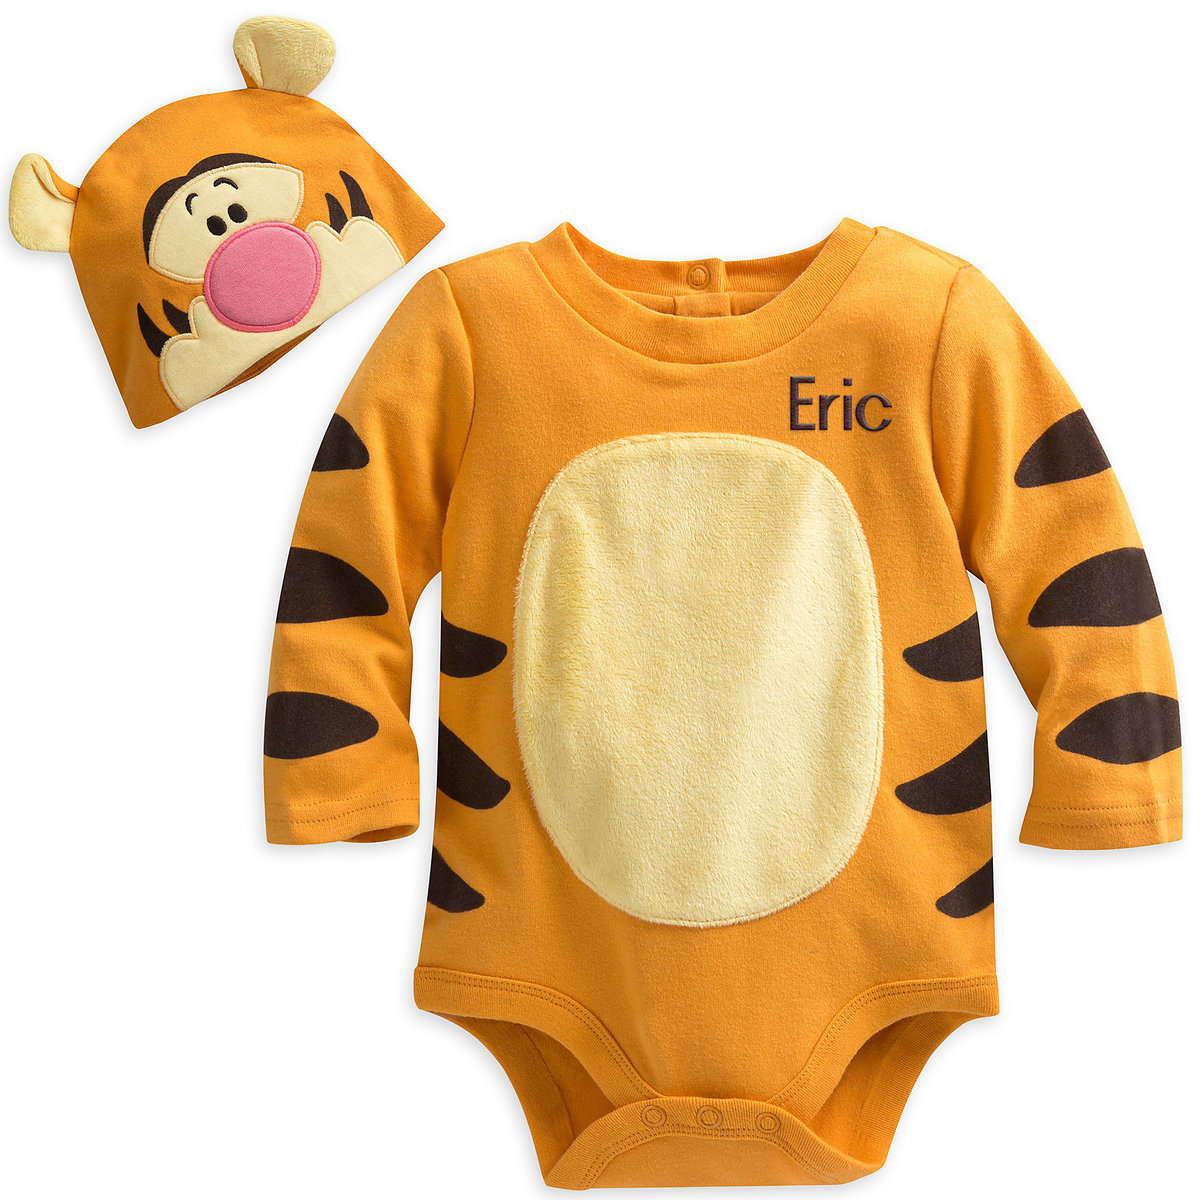 c07bccbd2 Product Image of Tigger Disney Cuddly Bodysuit Costume for Baby -  Personalizable # 1